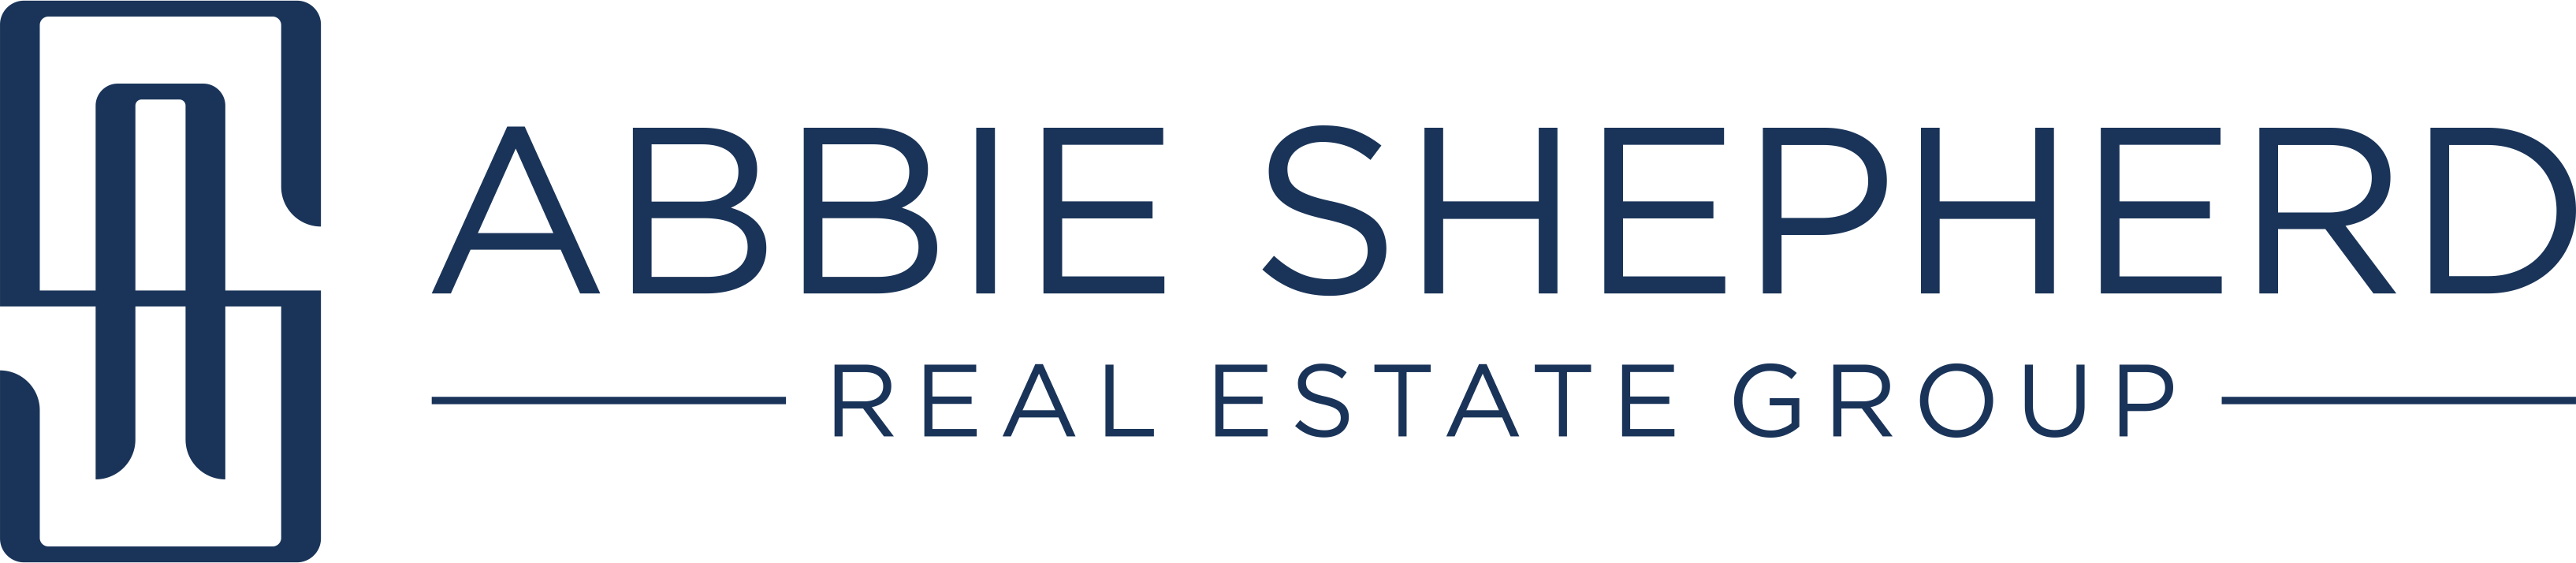 Abbie Shepherd Real Estate Group